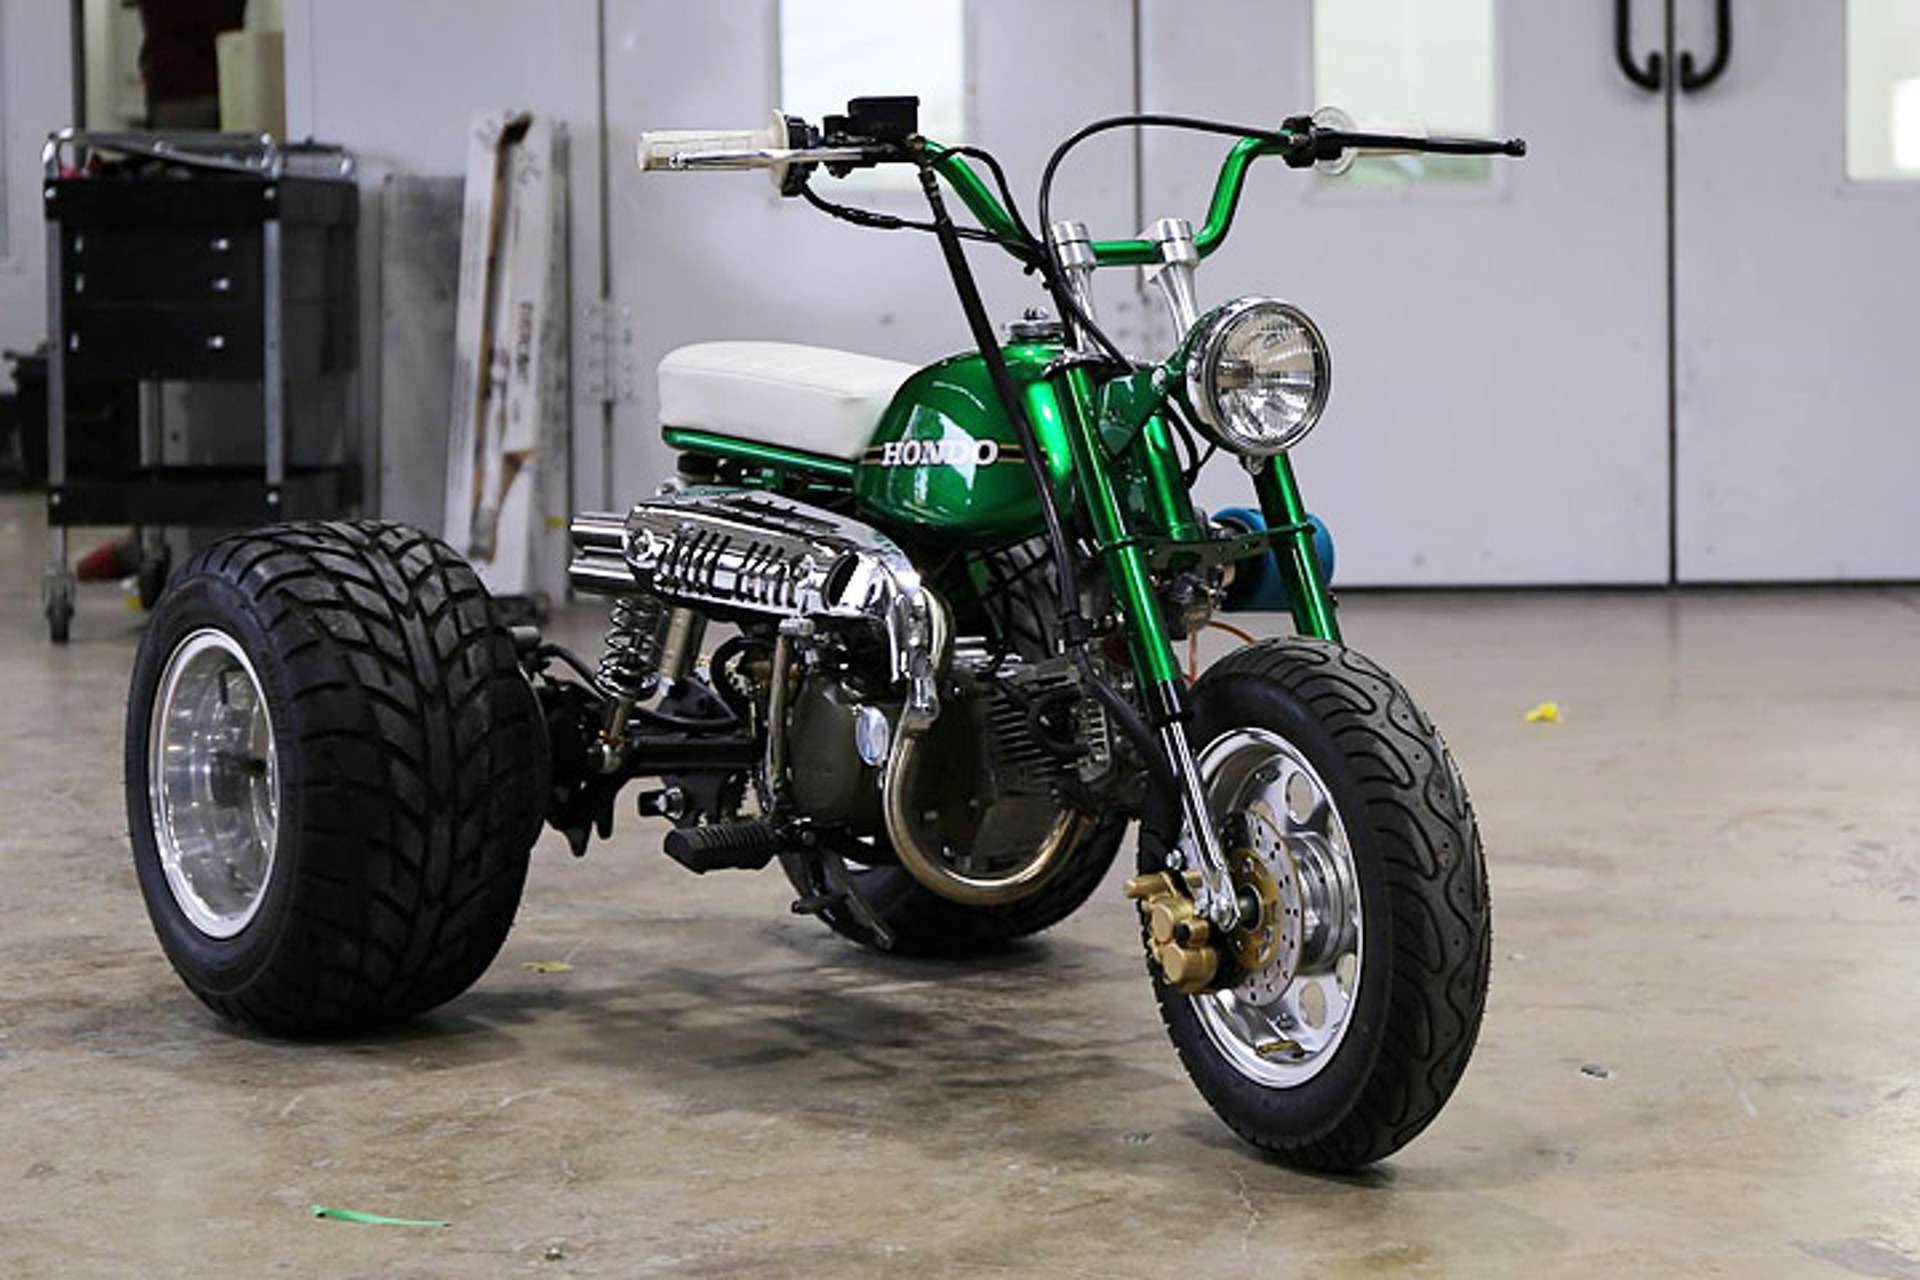 Gas Monkey Garage S Mean Green Hondo Trike Is Up For Sale